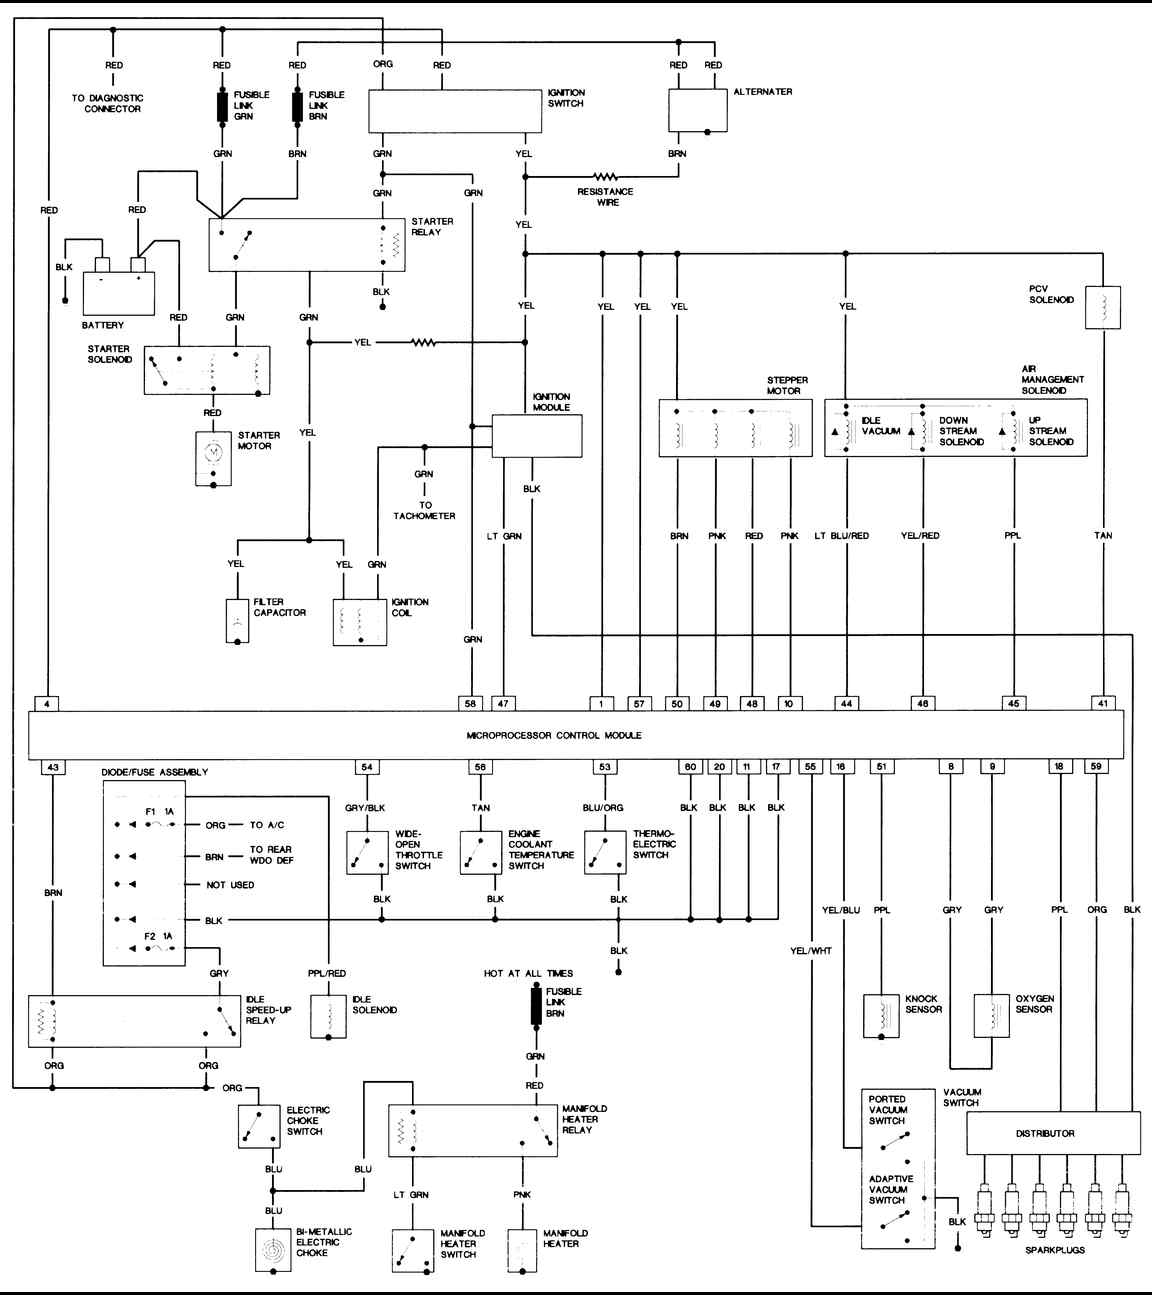 1987 jeep wiring schematic all wiring diagram 1992 Jeep Wrangler Wiring Schematic